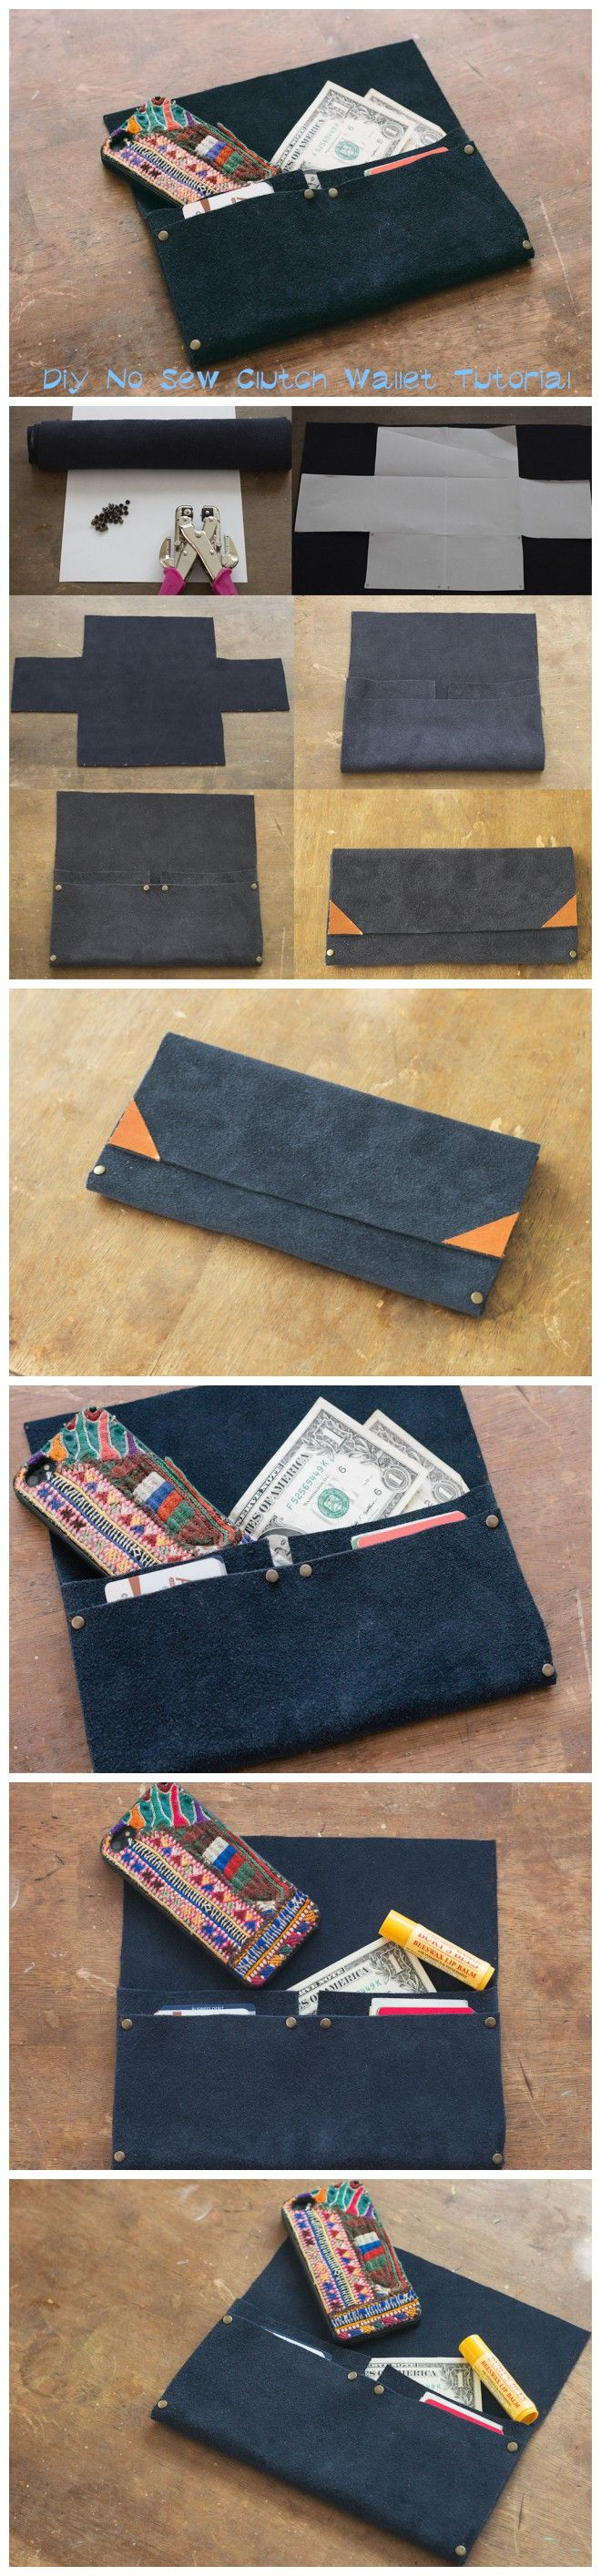 Diy No Sew Clutch Wallet Tutorial http://amazing.ckid.org/?submit=Search&s=bags&niche=bags